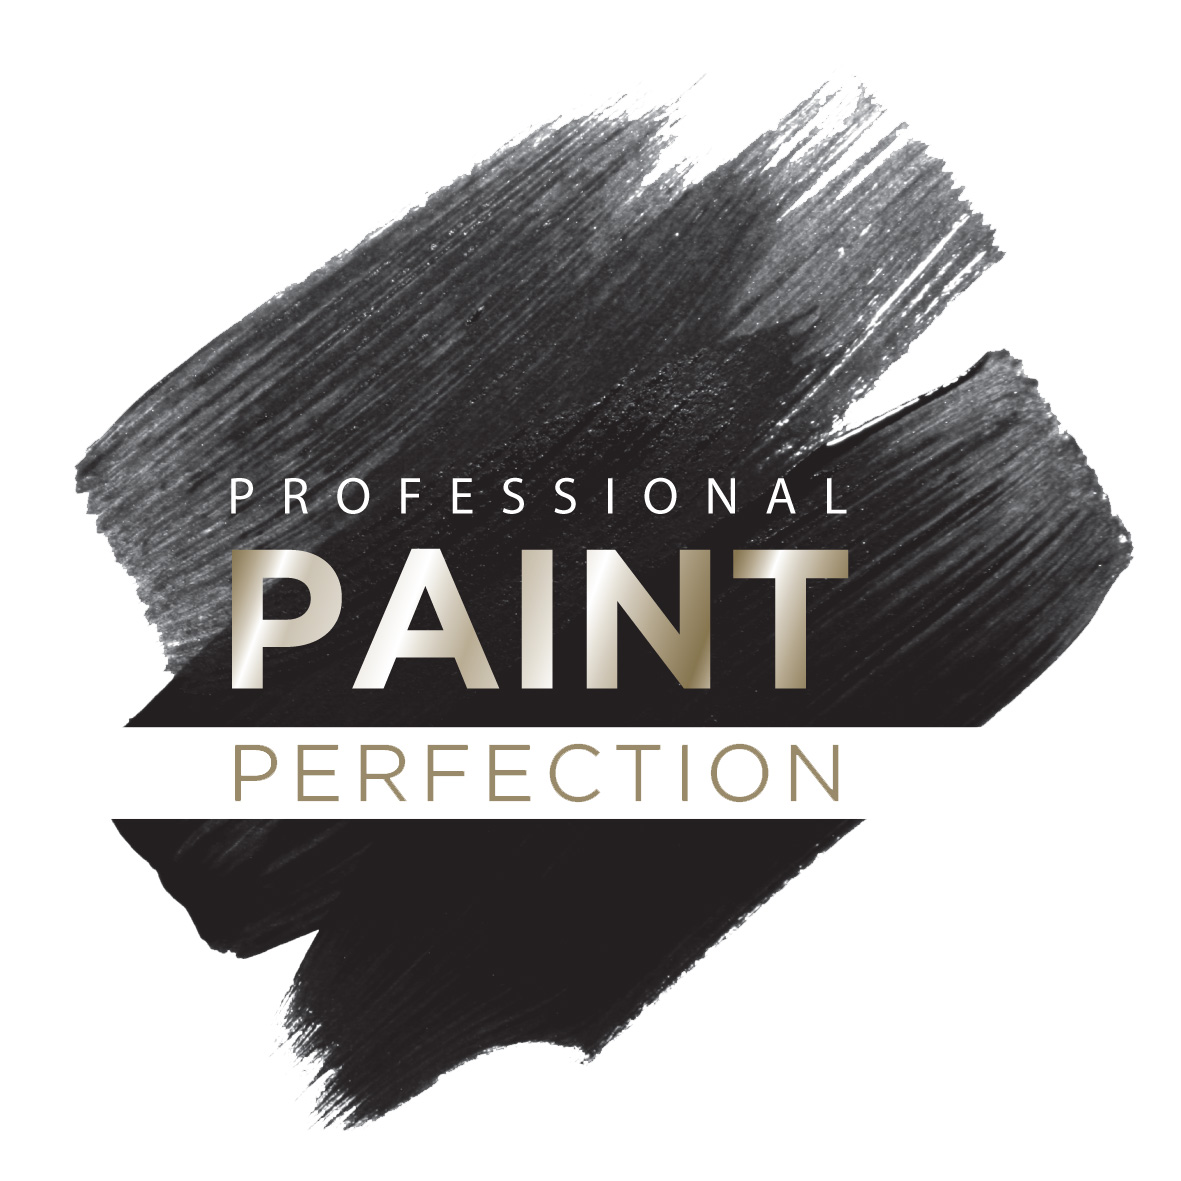 Professional Paint Perfection, Logo, Business in Networking Group